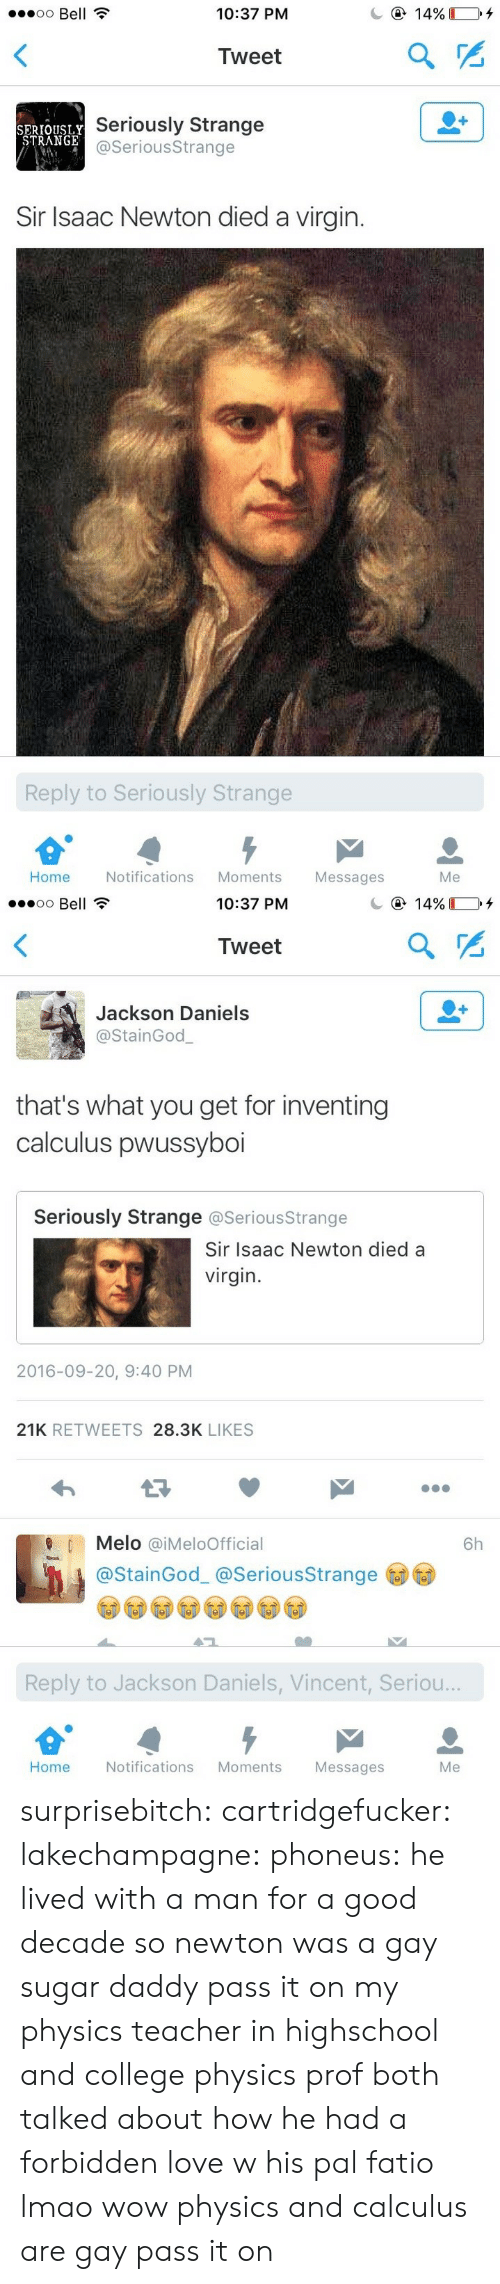 melo: oo Bell  10:37 PM  Tweet  SERTOUSLY  STRANGE  Seriously Strange  @SeriousStrange  Sir Isaac Newton died a virgin.  Reply to Seriously Strange  Home Notifications Moments Messages  Me   10:37 PM  Tweet  Jackson Daniels  @StainGod  that's what you get for inventing  calculus pwussyboi  Seriously Strange @SeriousStrange  Sir Isaac Newton died a  virgin  2016-09-20, 9:40 PM  21K RETWEETS 28.3K LIKES  Melo @iMeloOfficial  6h  @StainGod_ @SeriousStrange  Reply to Jackson Daniels, Vincent, Seriou..  Home  Notifications Moments  Messages  Me surprisebitch:  cartridgefucker: lakechampagne:  phoneus: he lived with a man for a good decade so newton was a gay sugar daddy pass it on  my physics teacher in highschool and college physics prof both talked about how he had a forbidden love w his pal fatio lmao  wow physics and calculus are gay pass it on